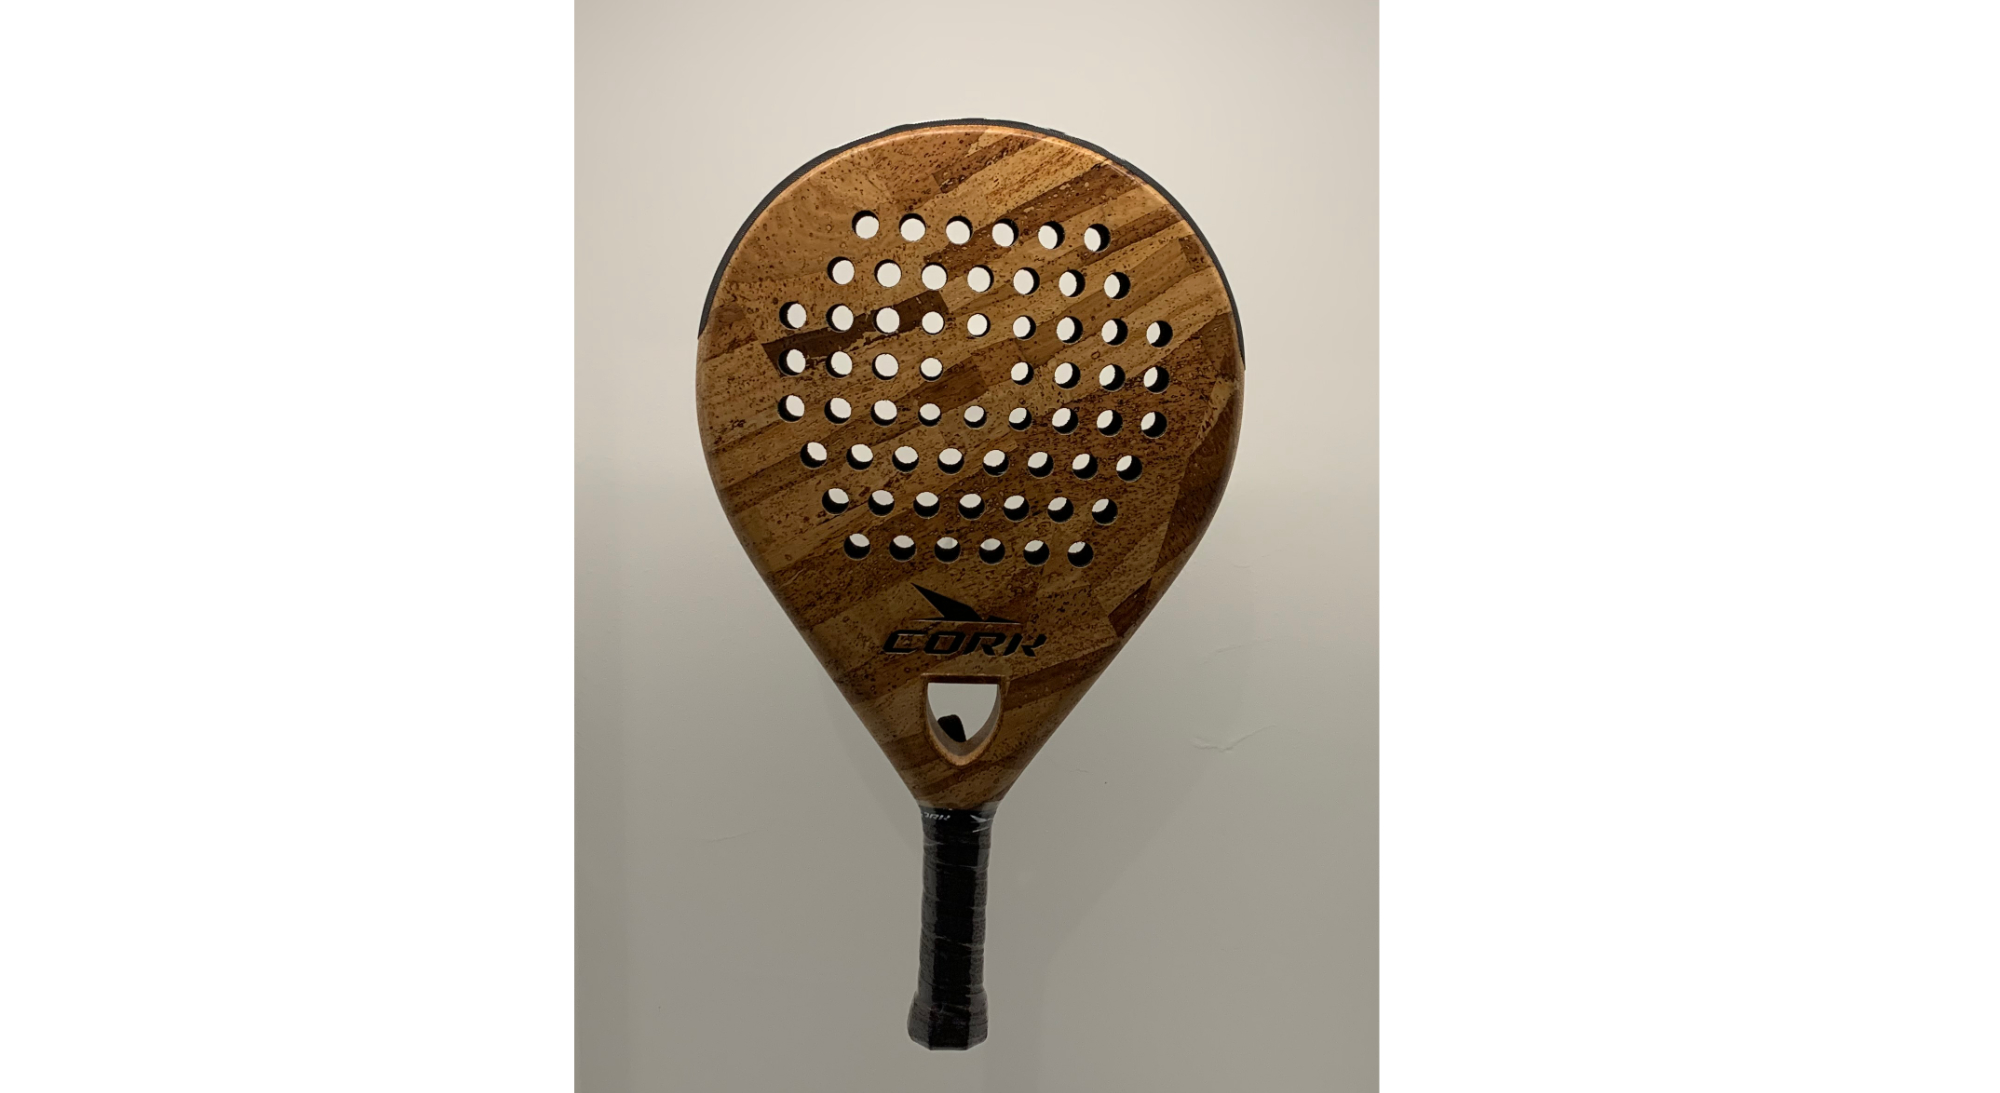 A bat made for playing the relatively new game of padel